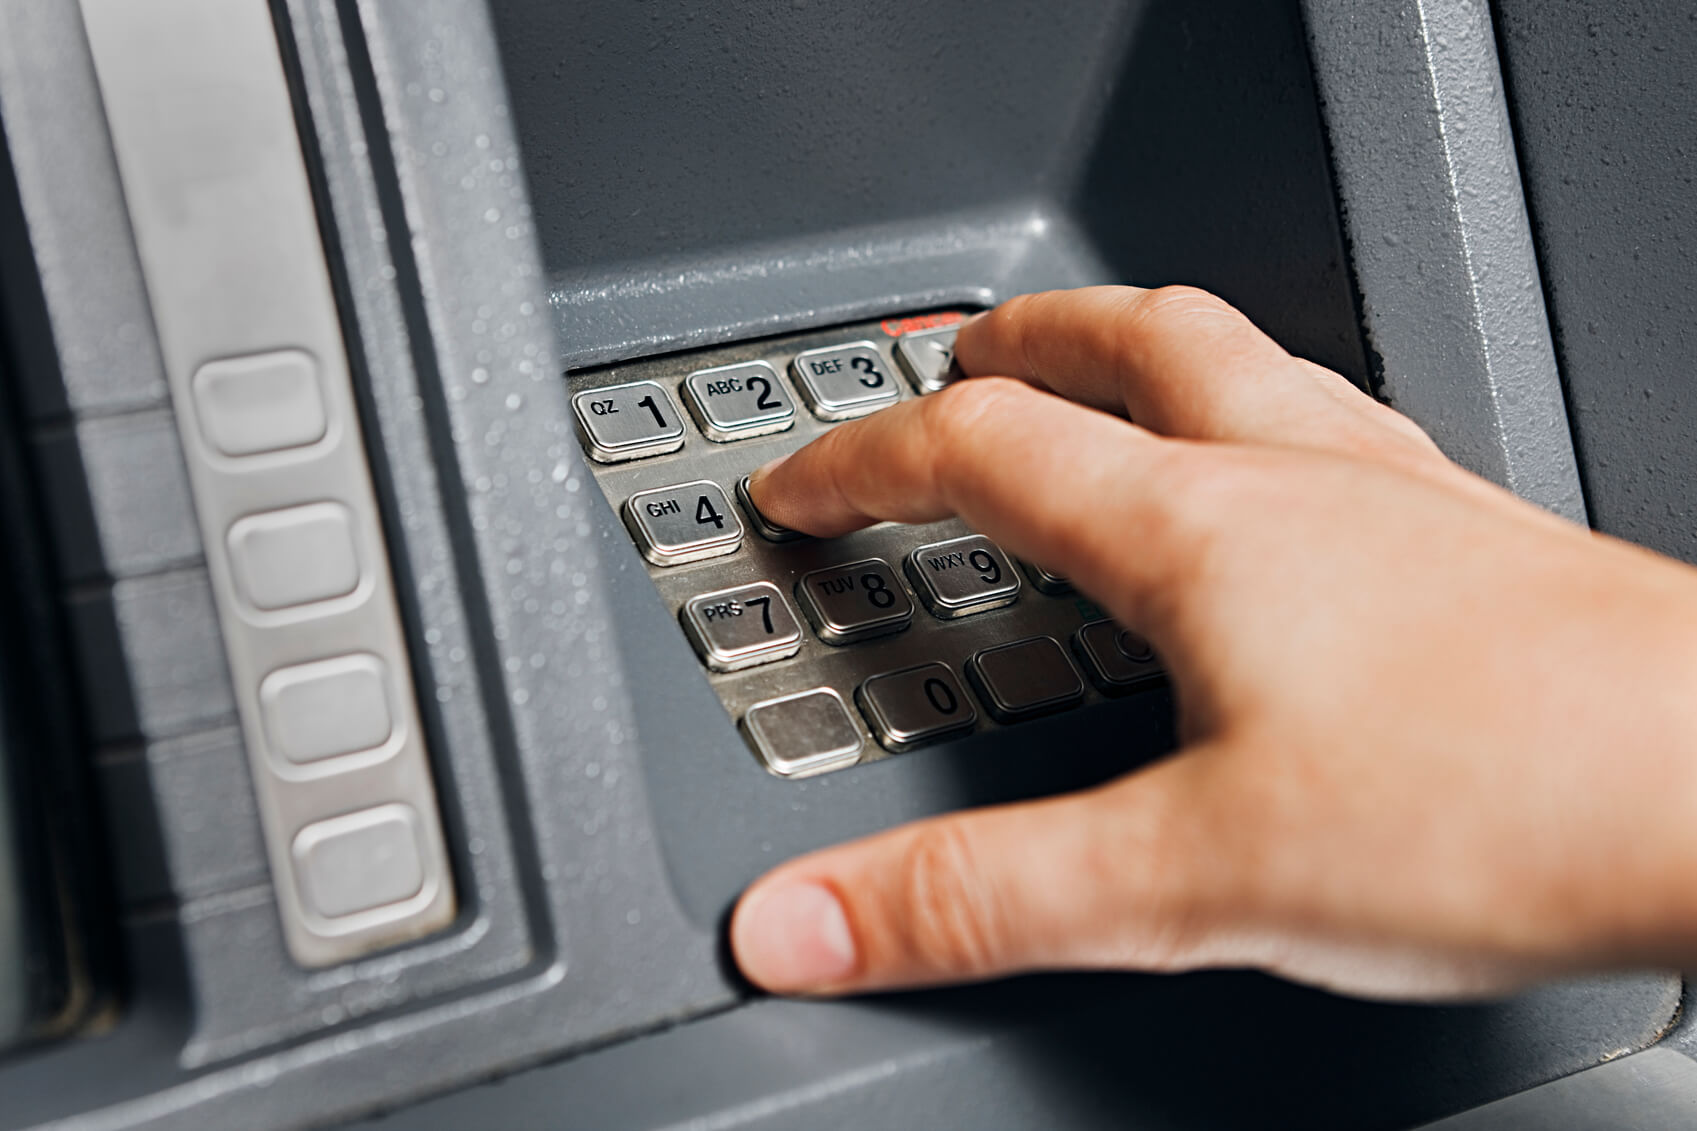 Close up on a woman's hand as she enters numbers on an ATM keypad. Shot with Canon EOS 1Ds Mark III.